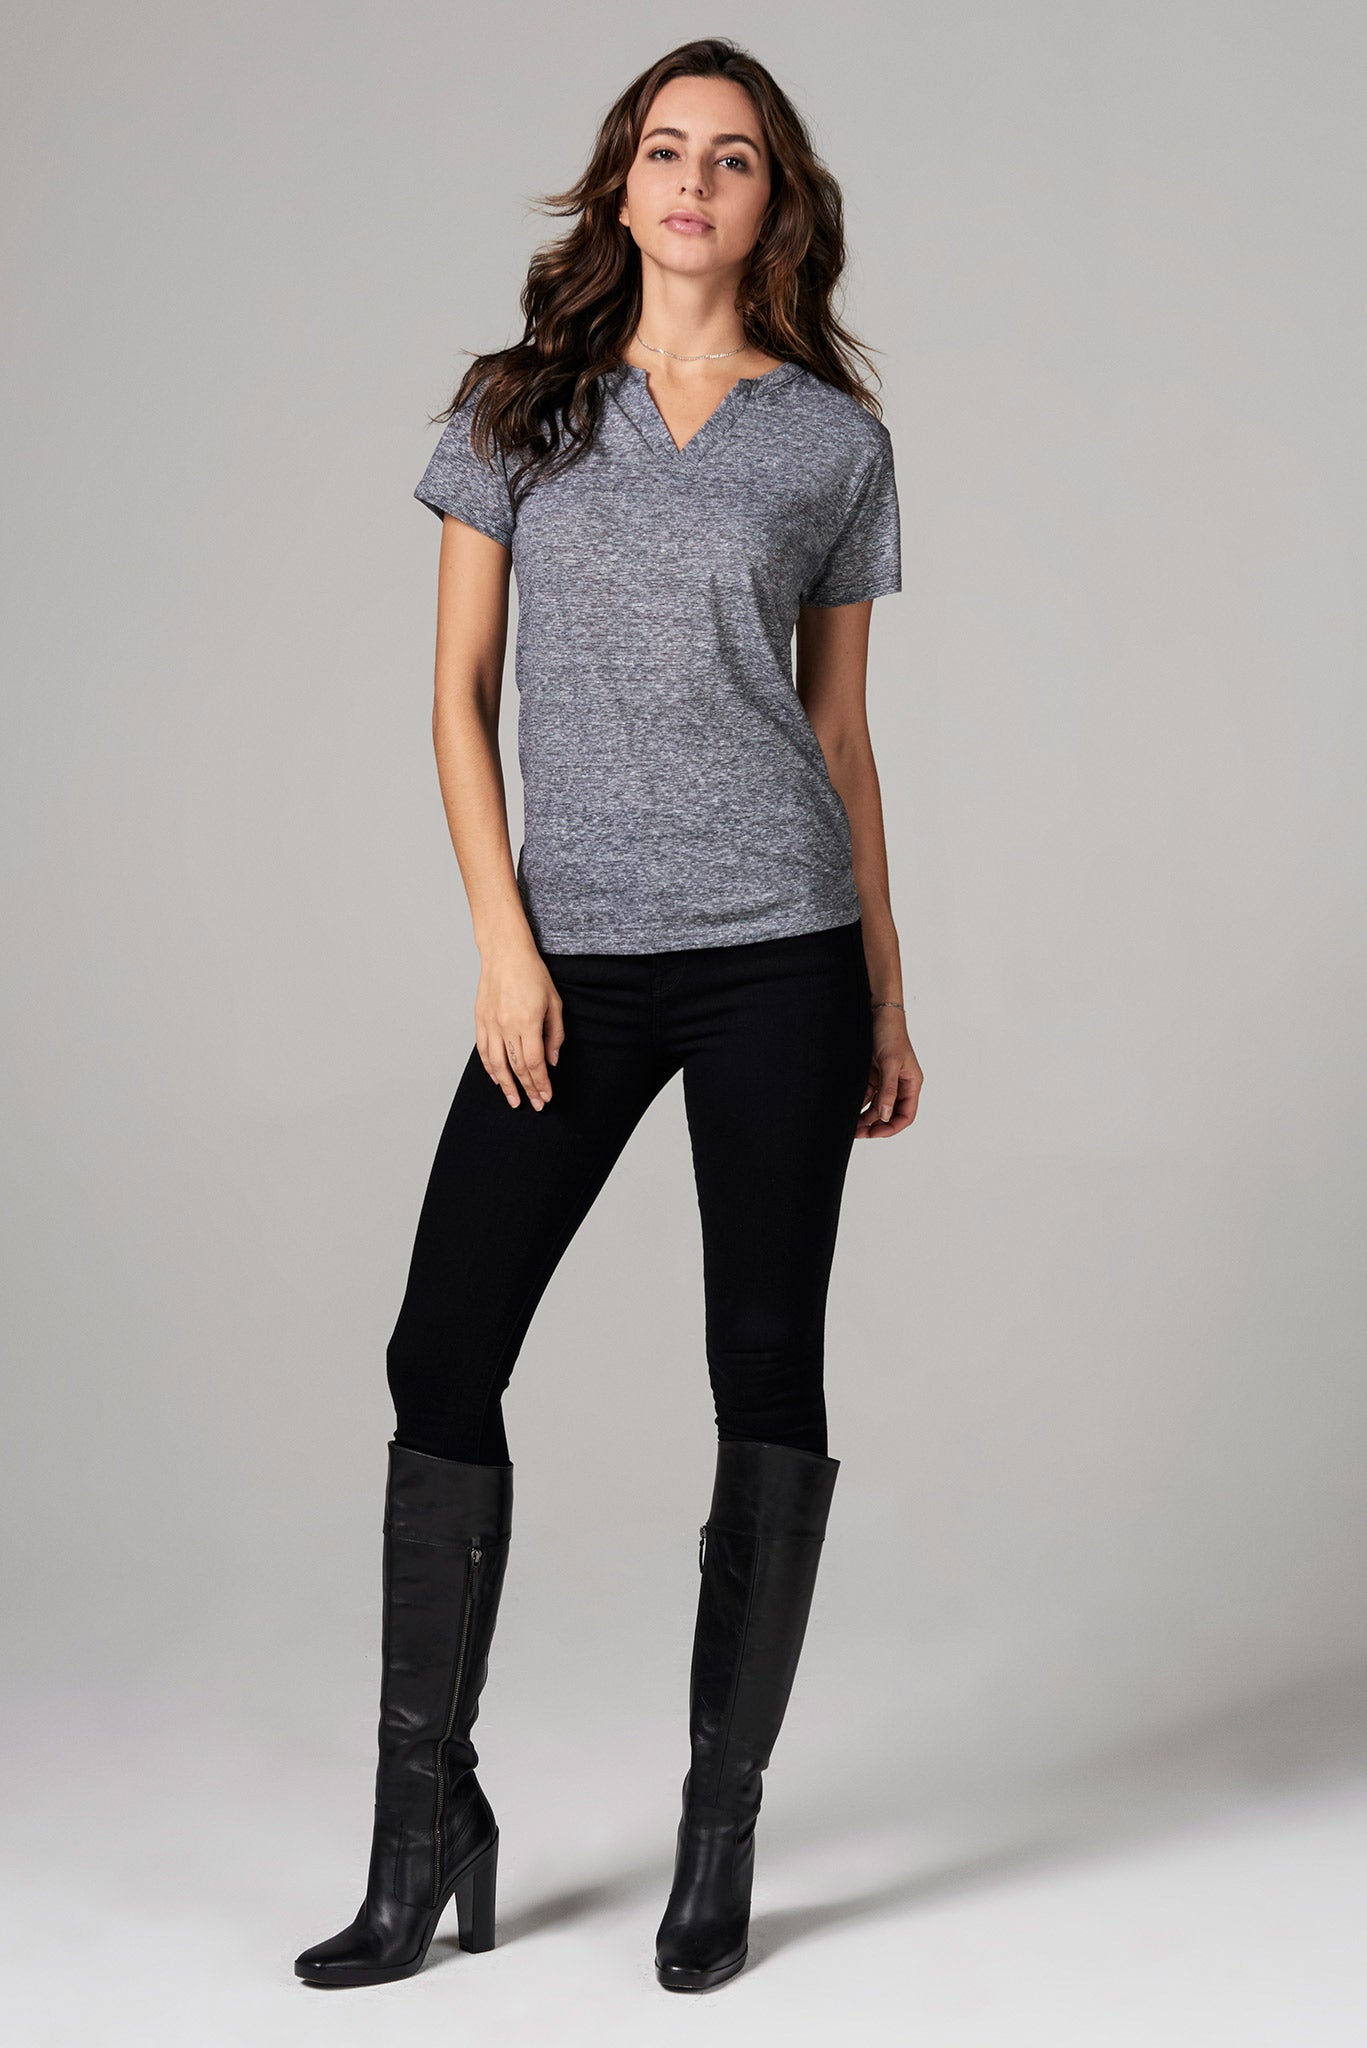 WOMEN'S CROSS V-NECK TEE - MINI STRIPE